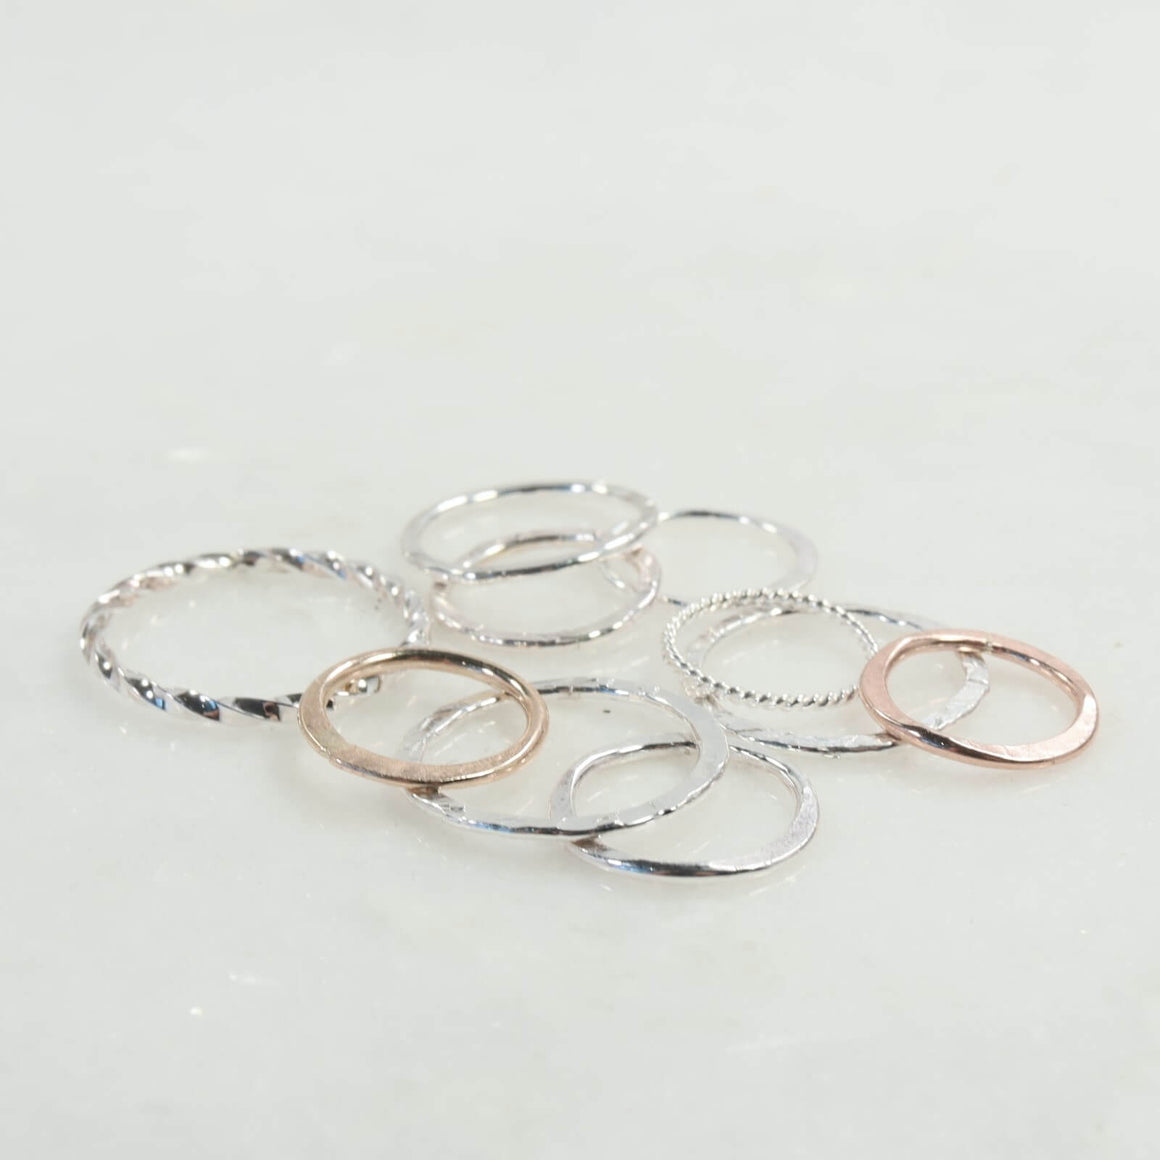 30mm 1mm circles silver, gold, pink gold